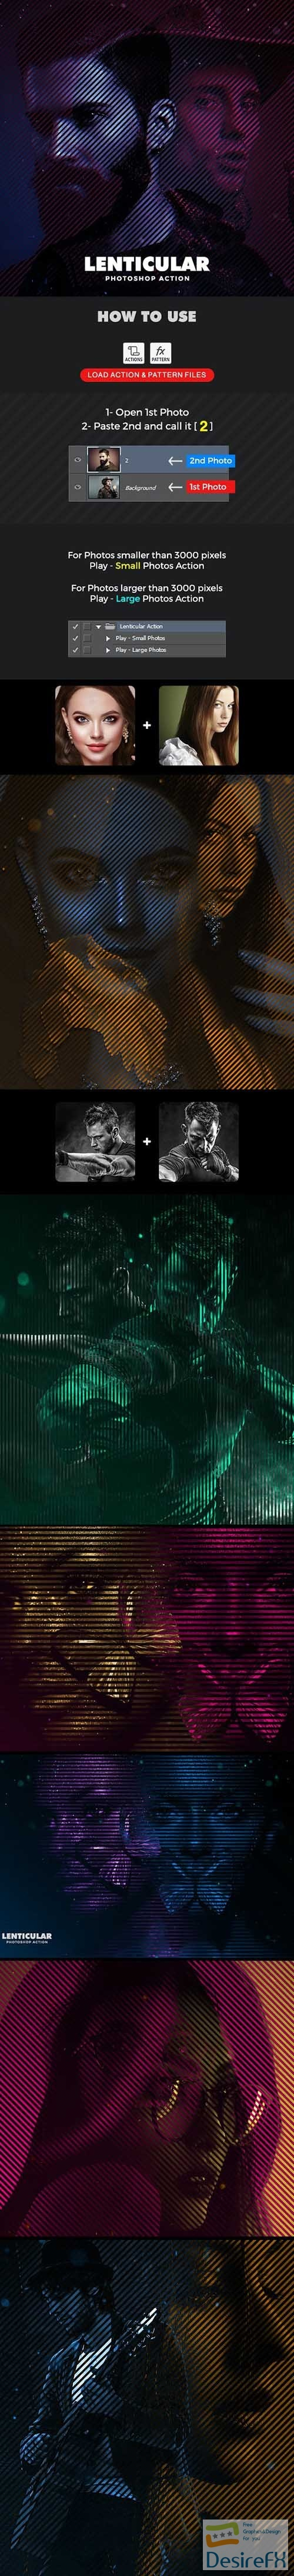 GraphicRiver - Lenticular Photoshop Action 30263145